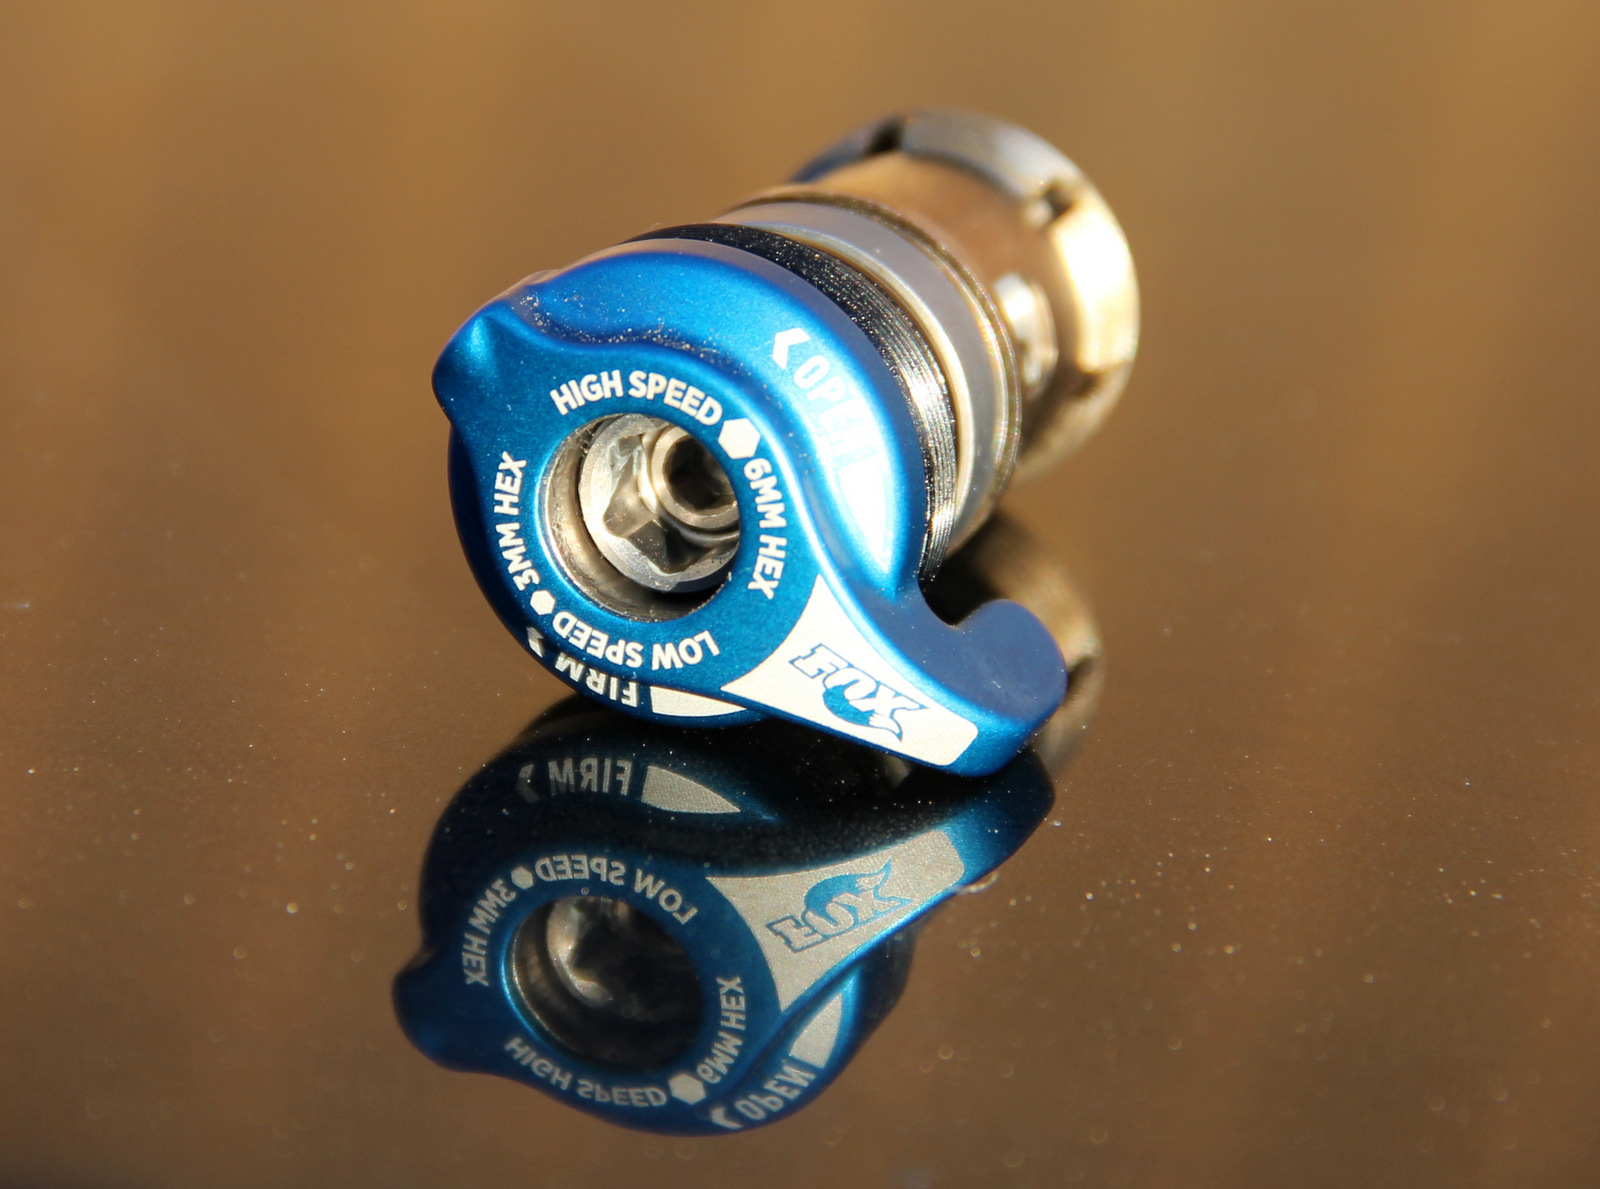 The X2 lever is an optional feature on these shocks and is available as an uprade.